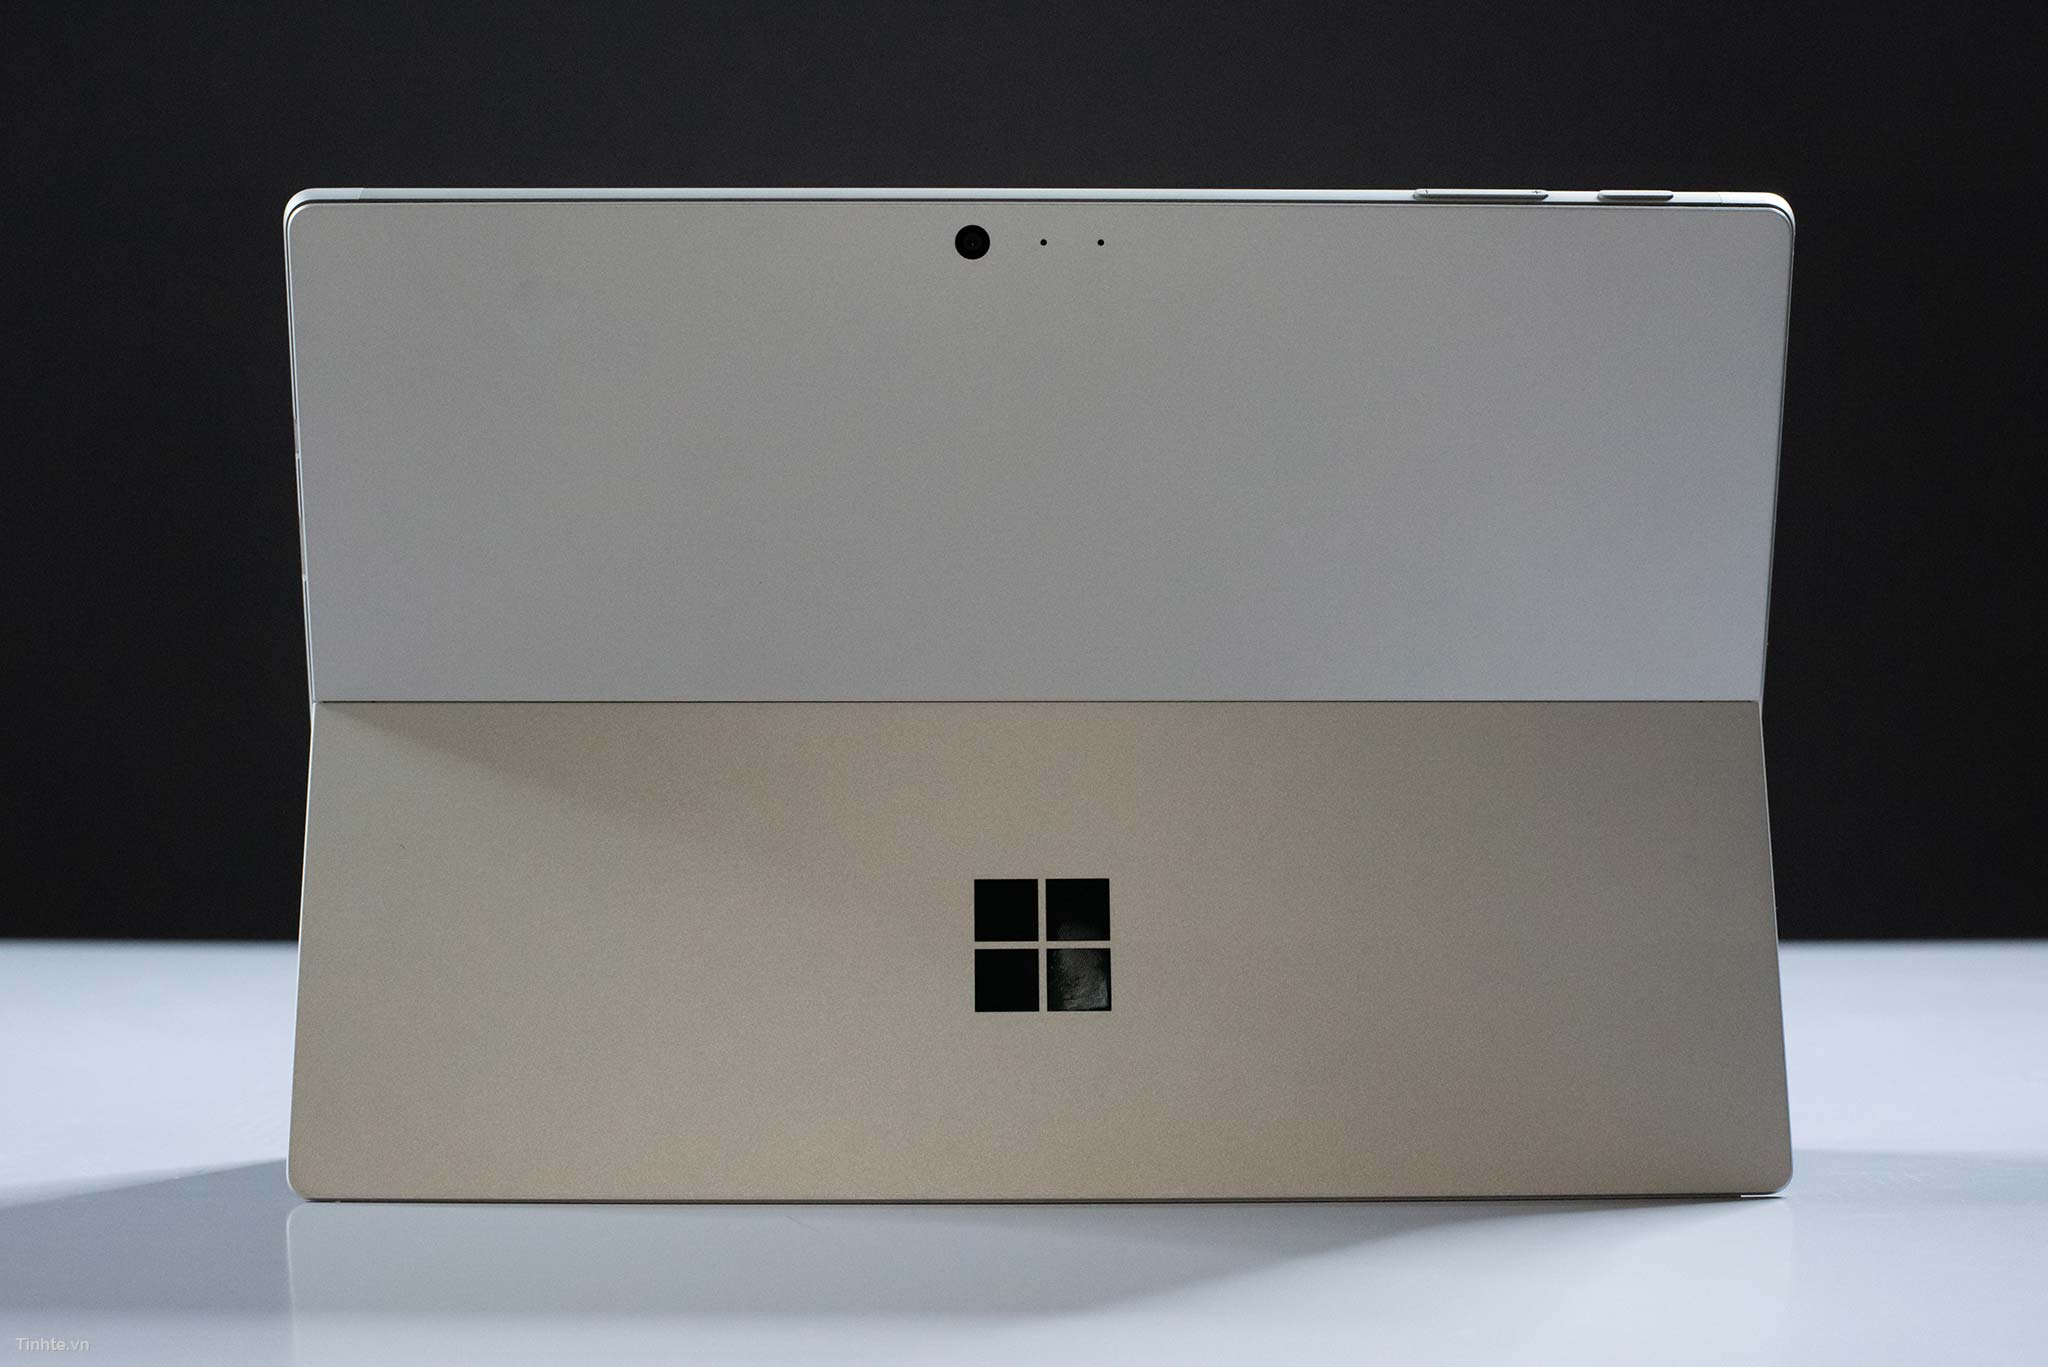 surface pro 6 leaks early  reveals updated design